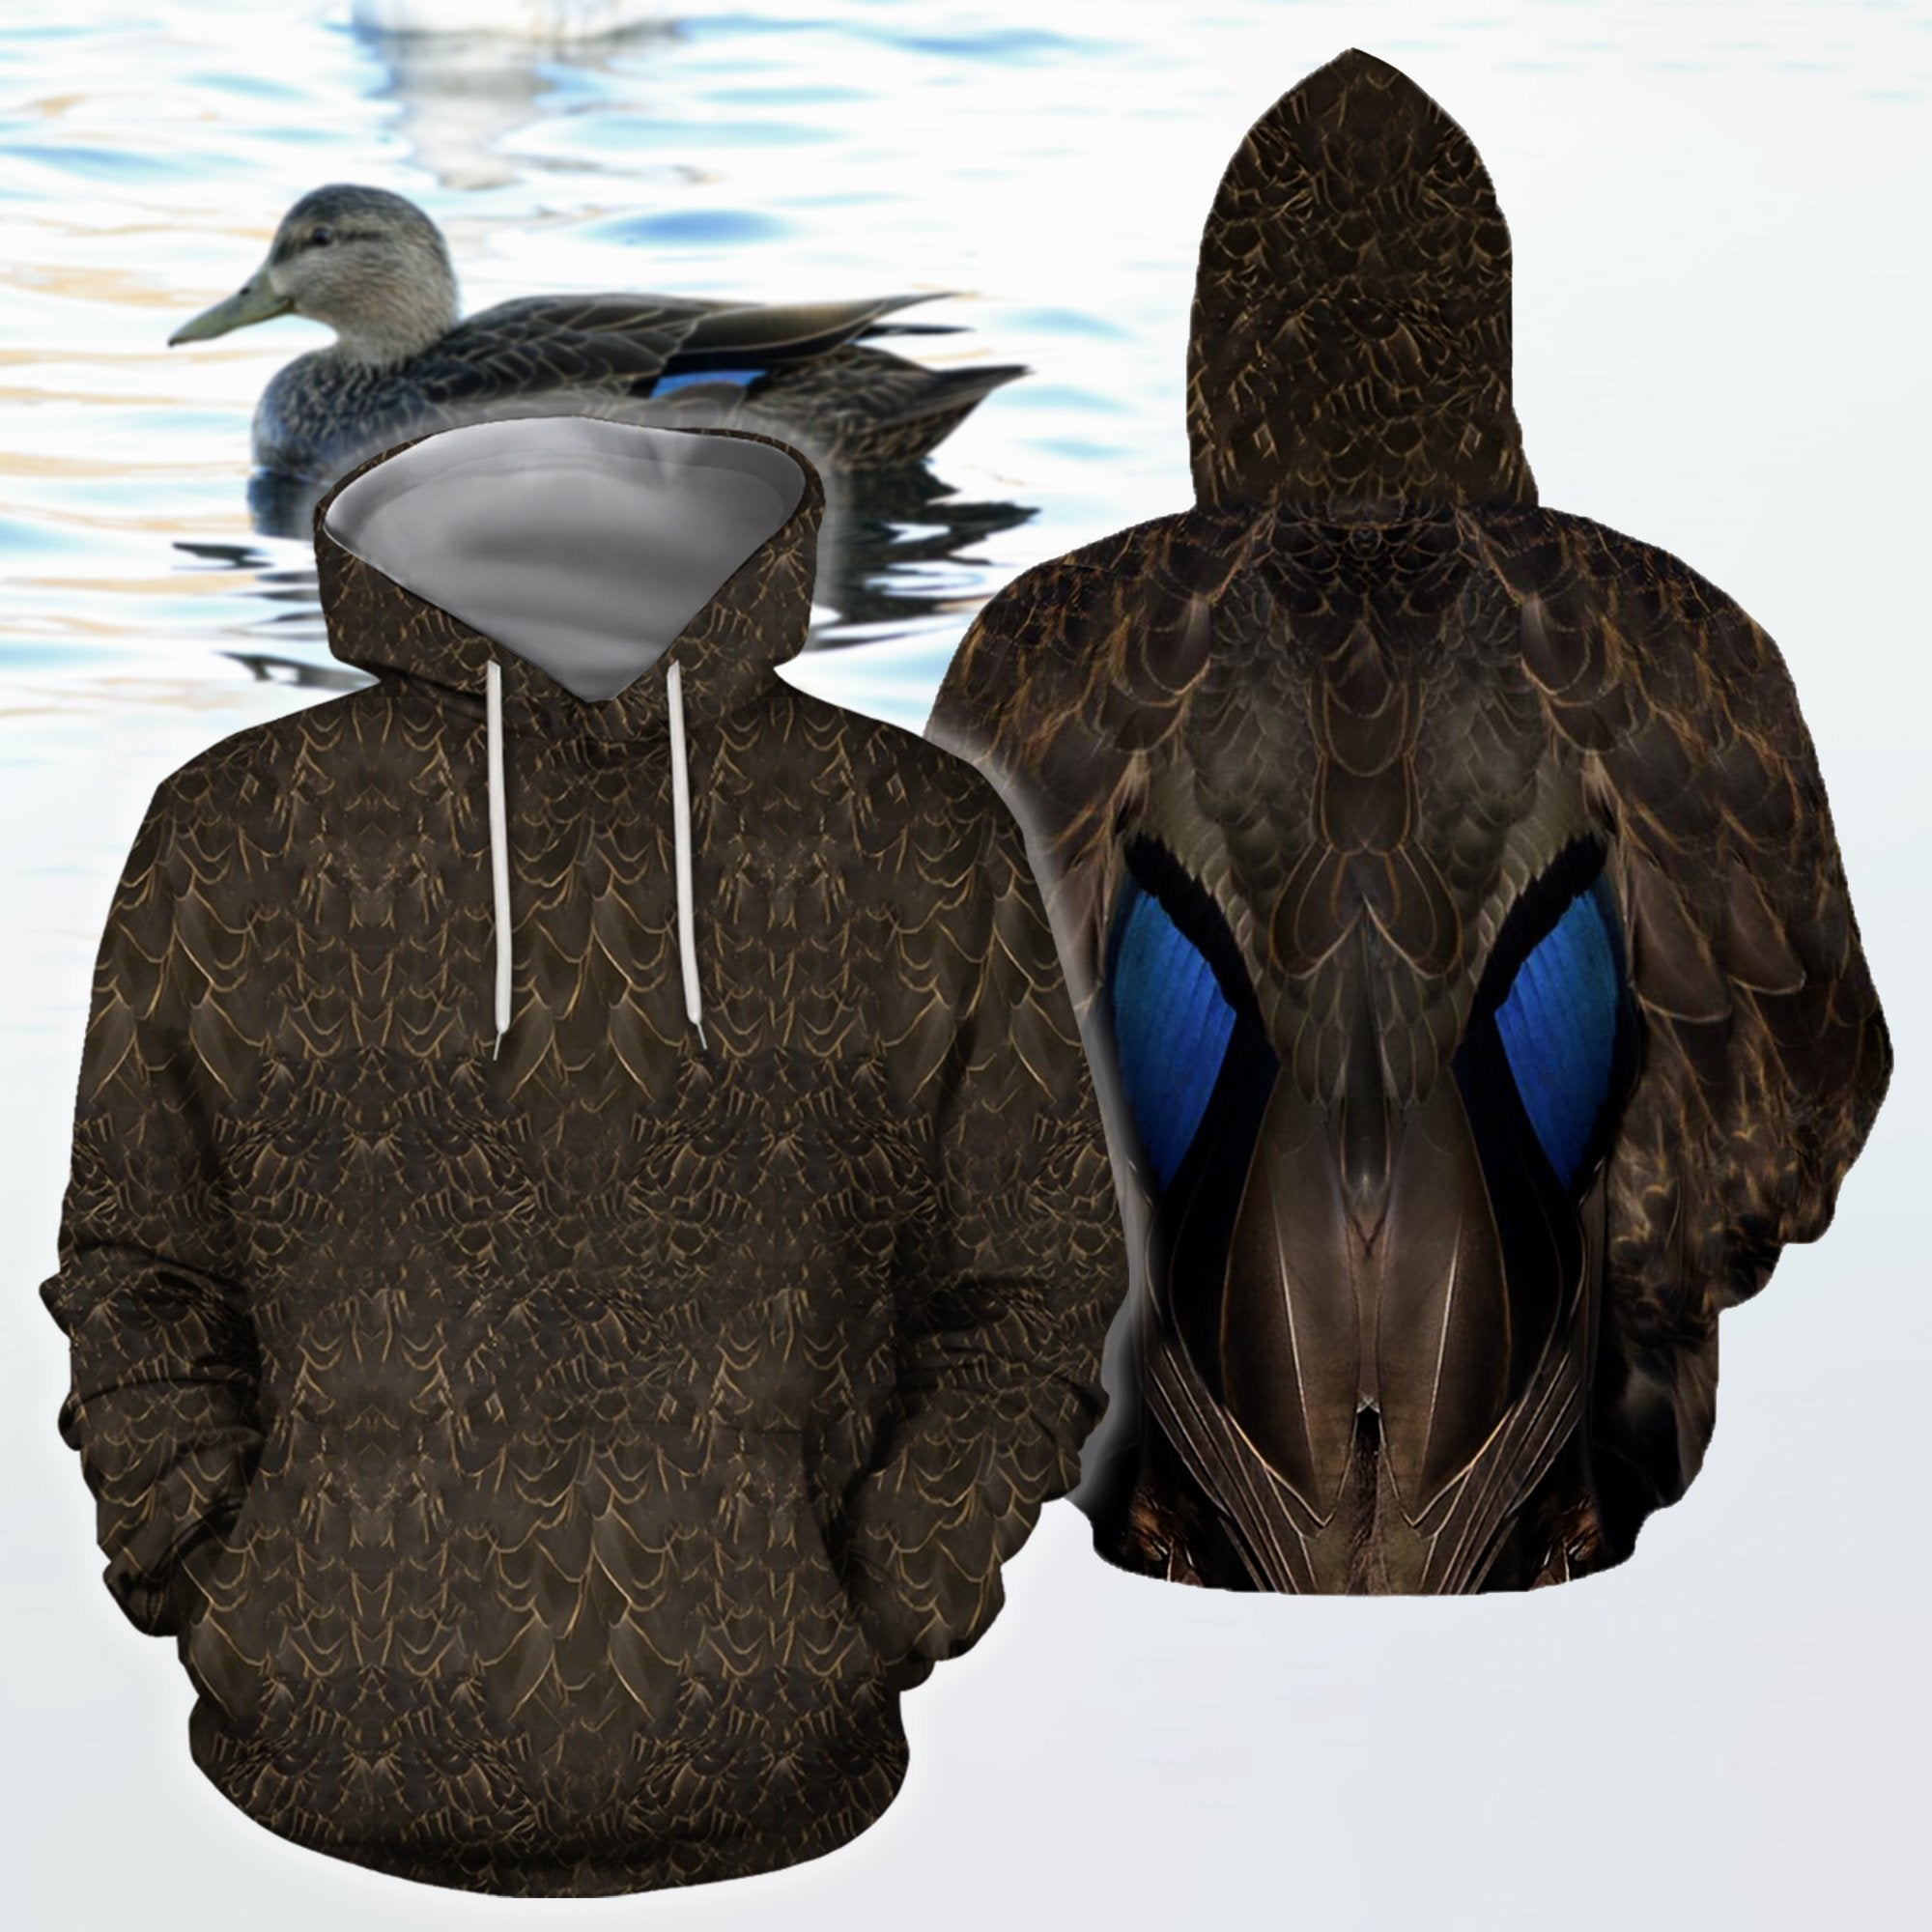 3D All Over Printed Female Mallard Duck Cover - Amaze Style™